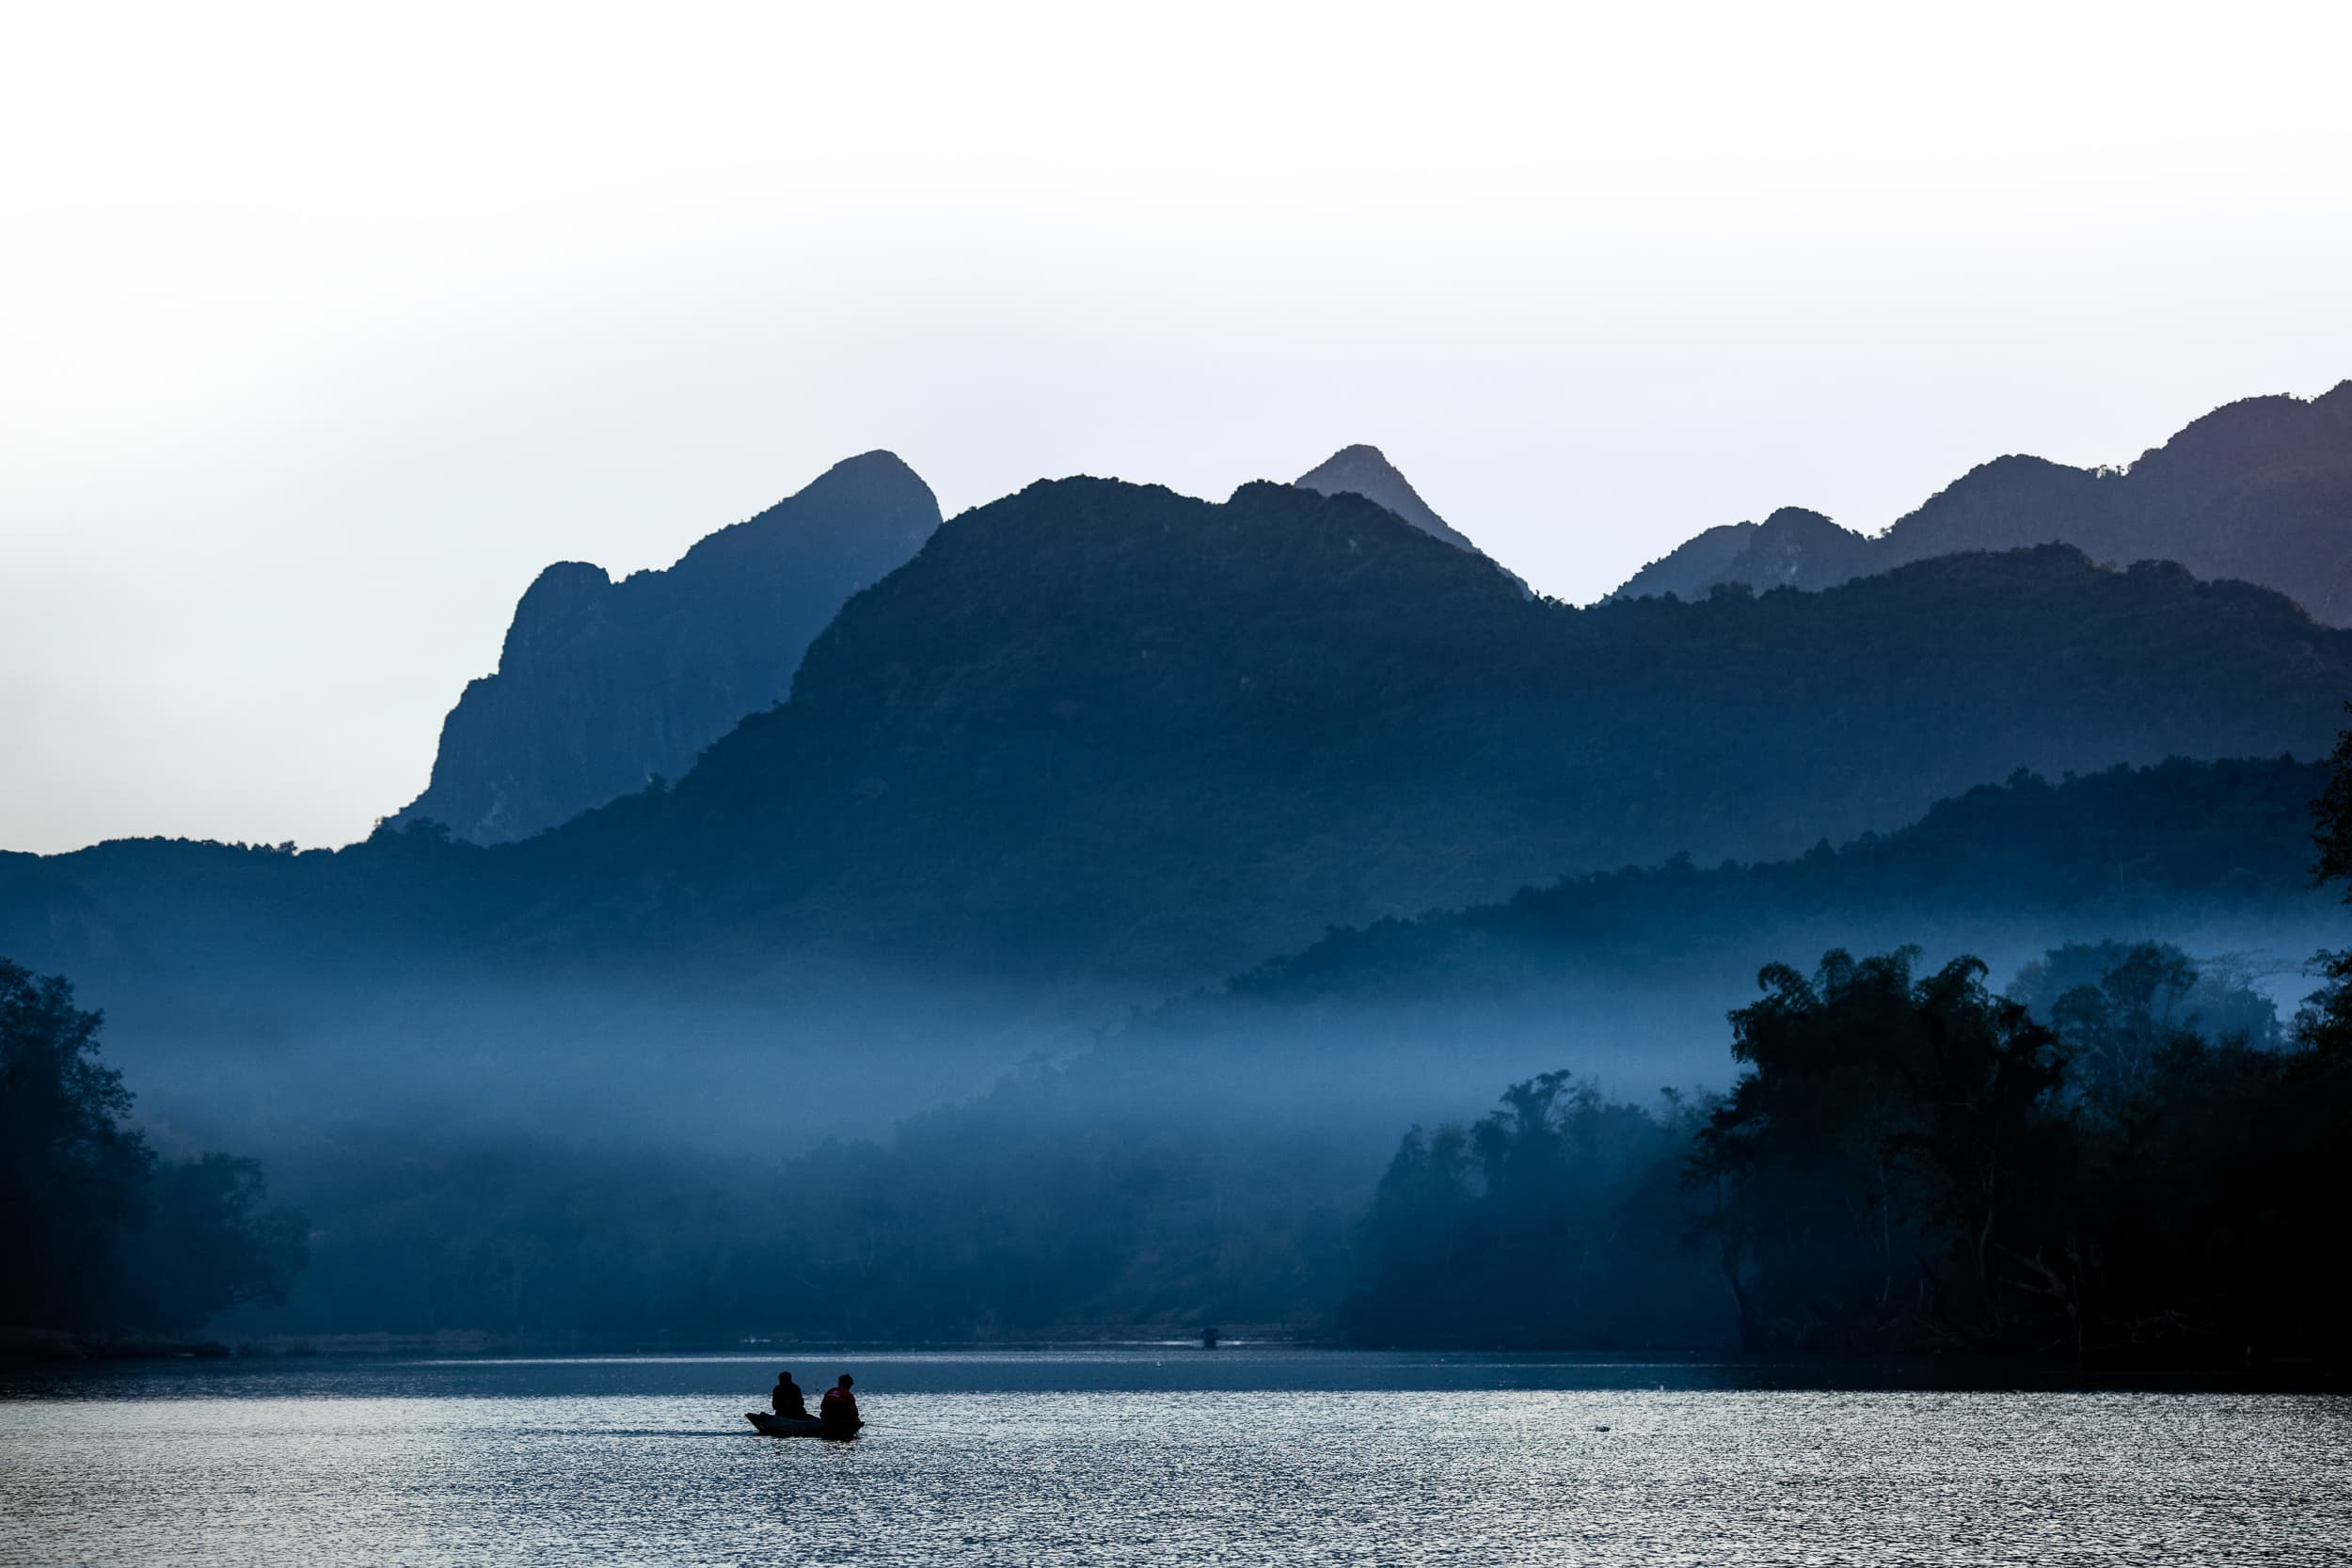 Nong Khiaw Riverside in Laos